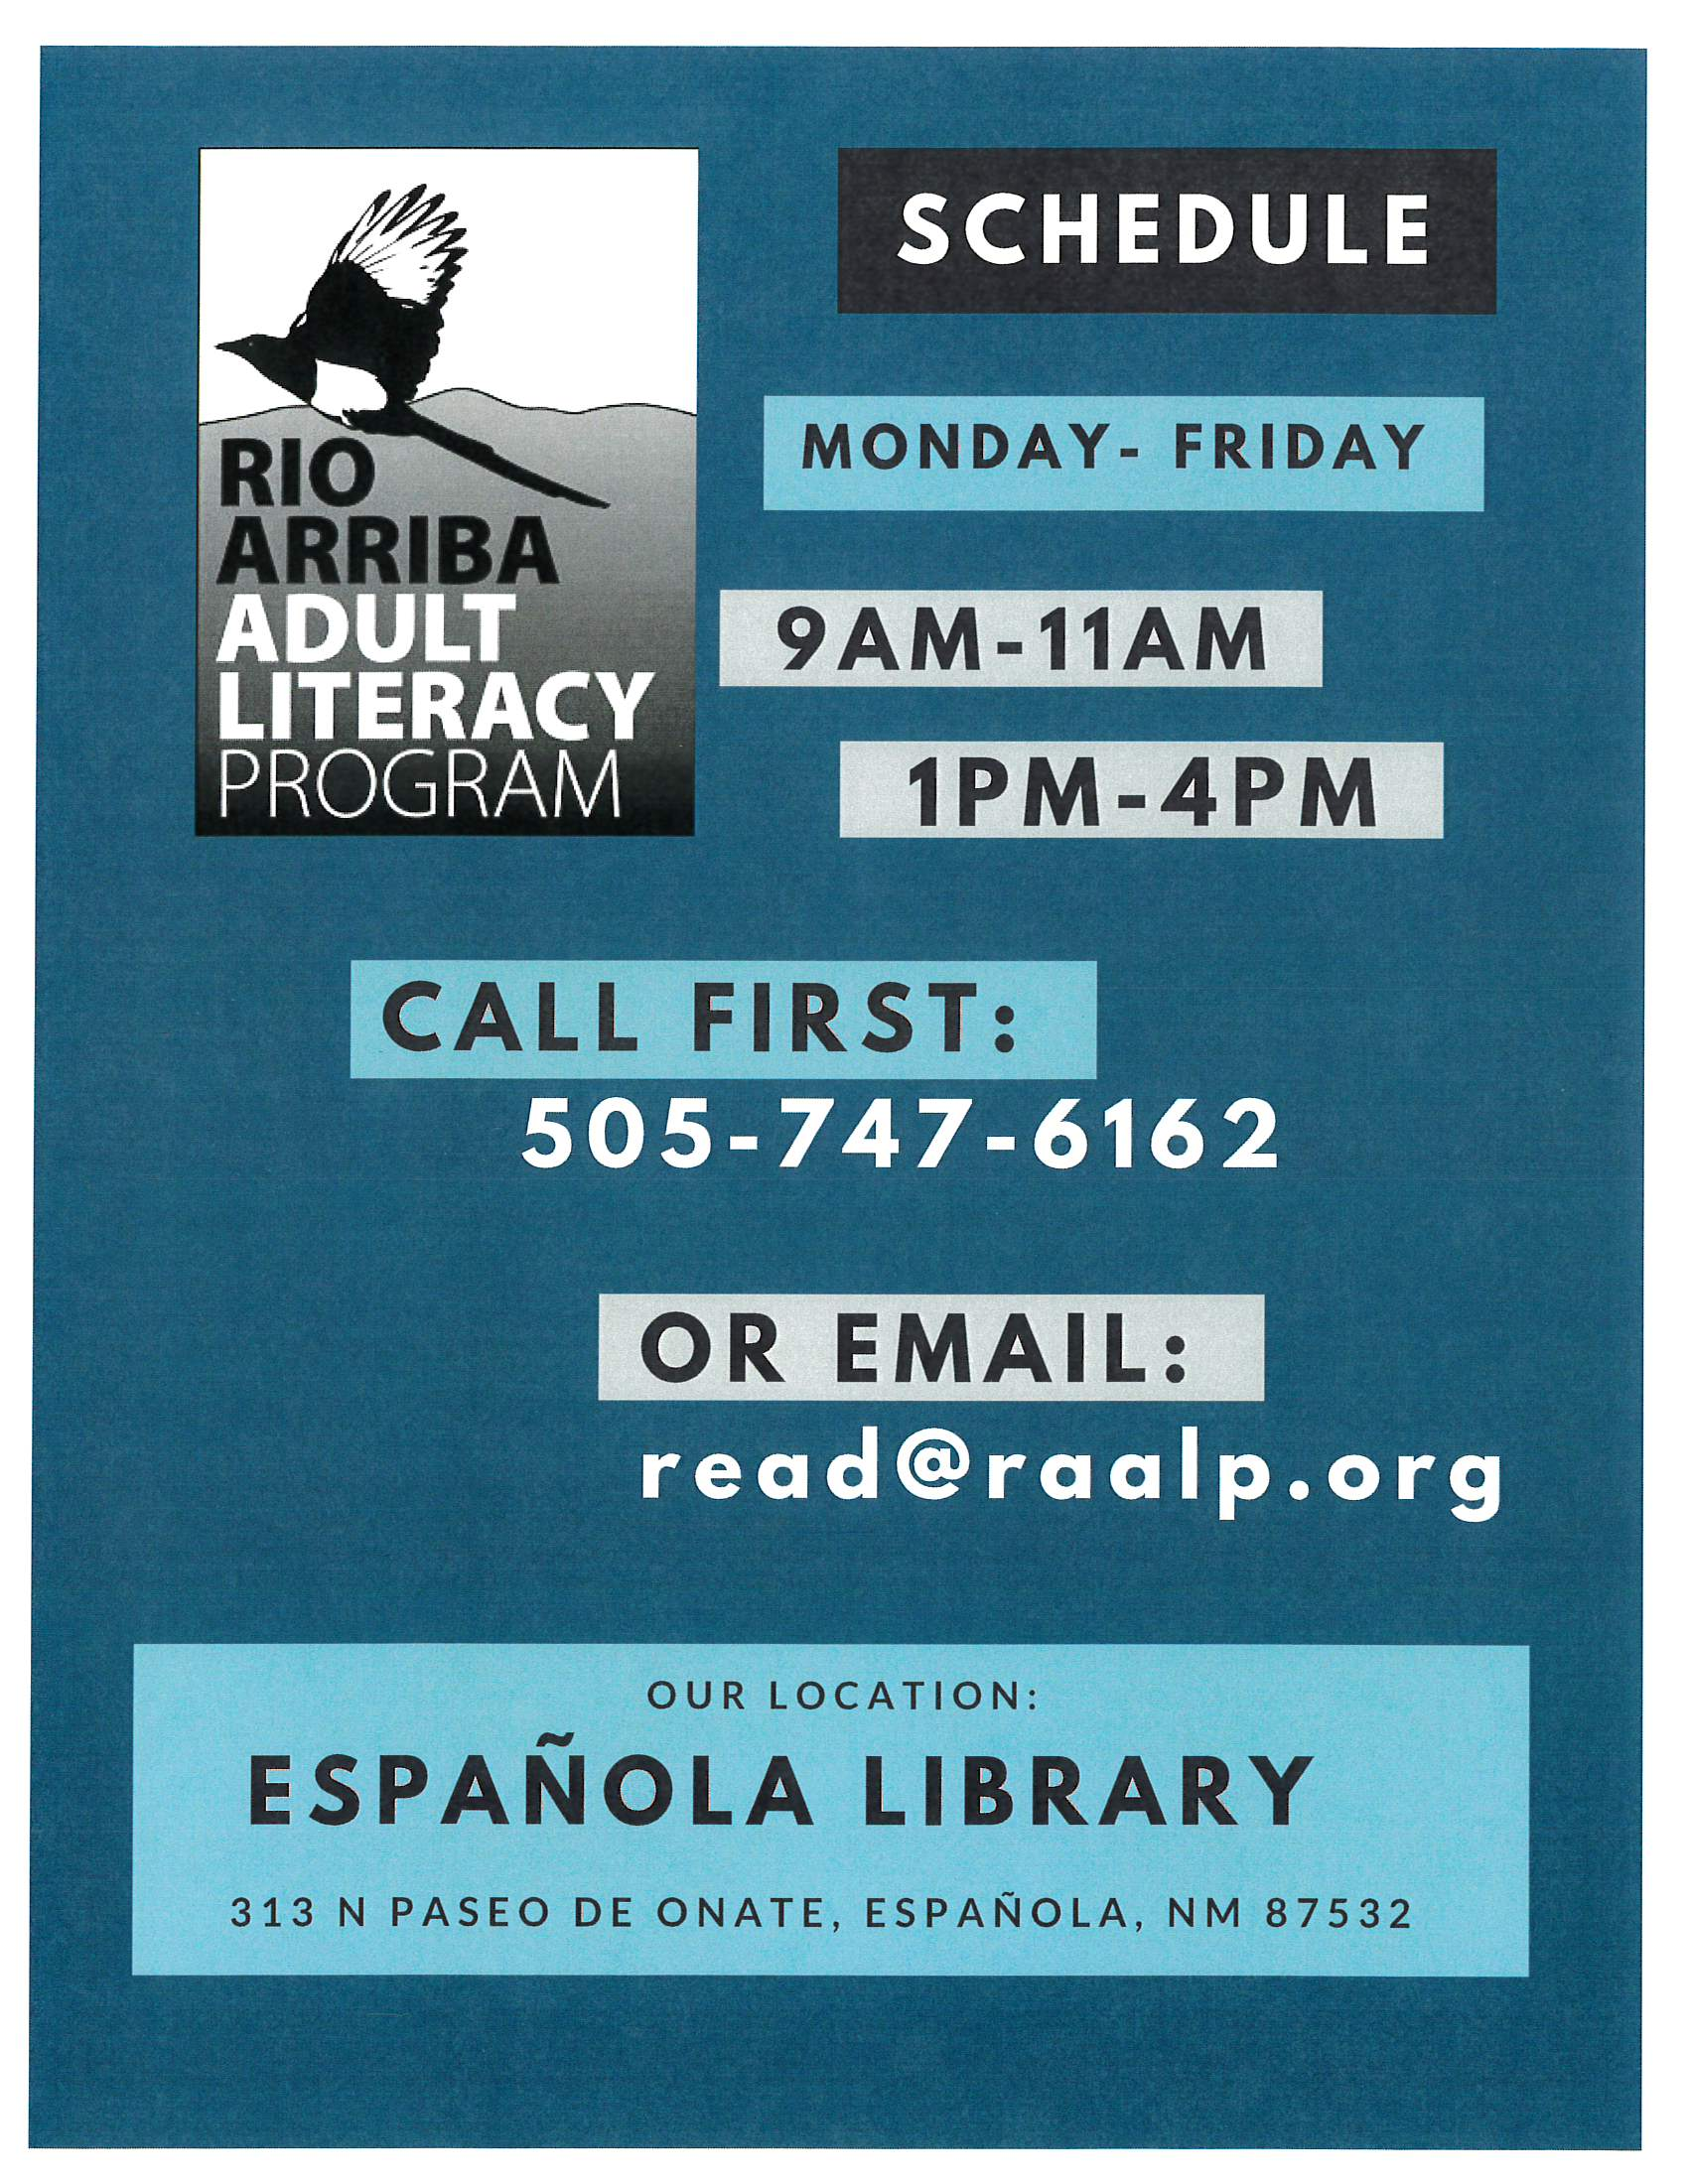 Rio Arriba Adult Literacy Program